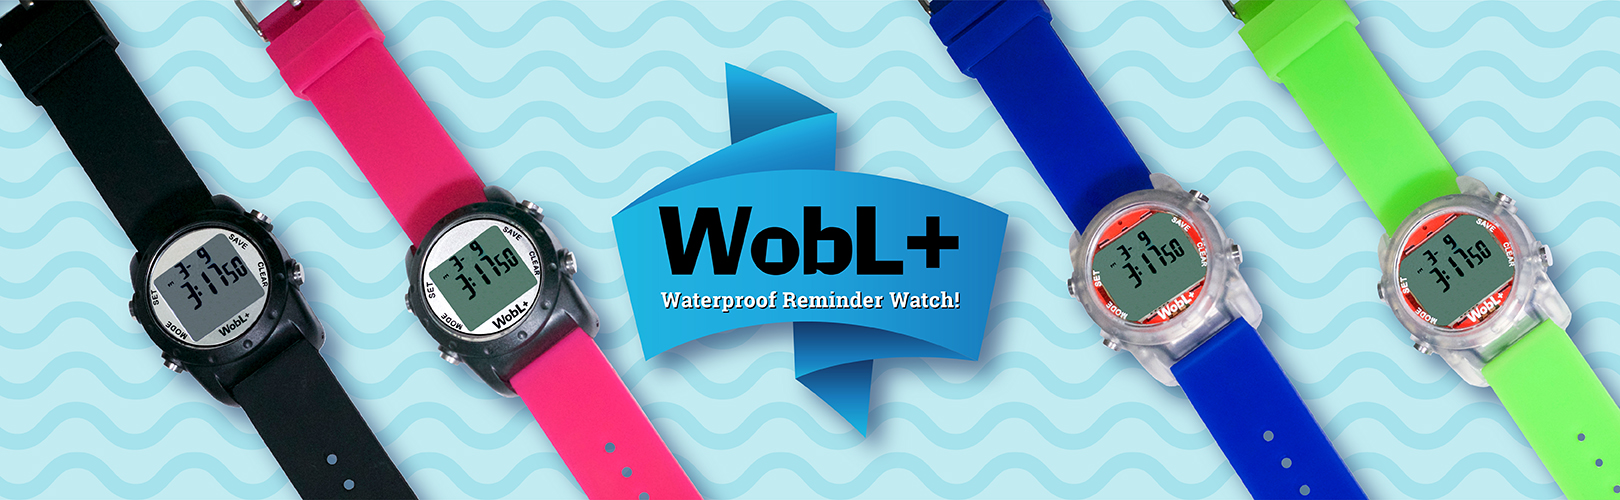 WobL+ waterproof vibrating alarm watch in four colors